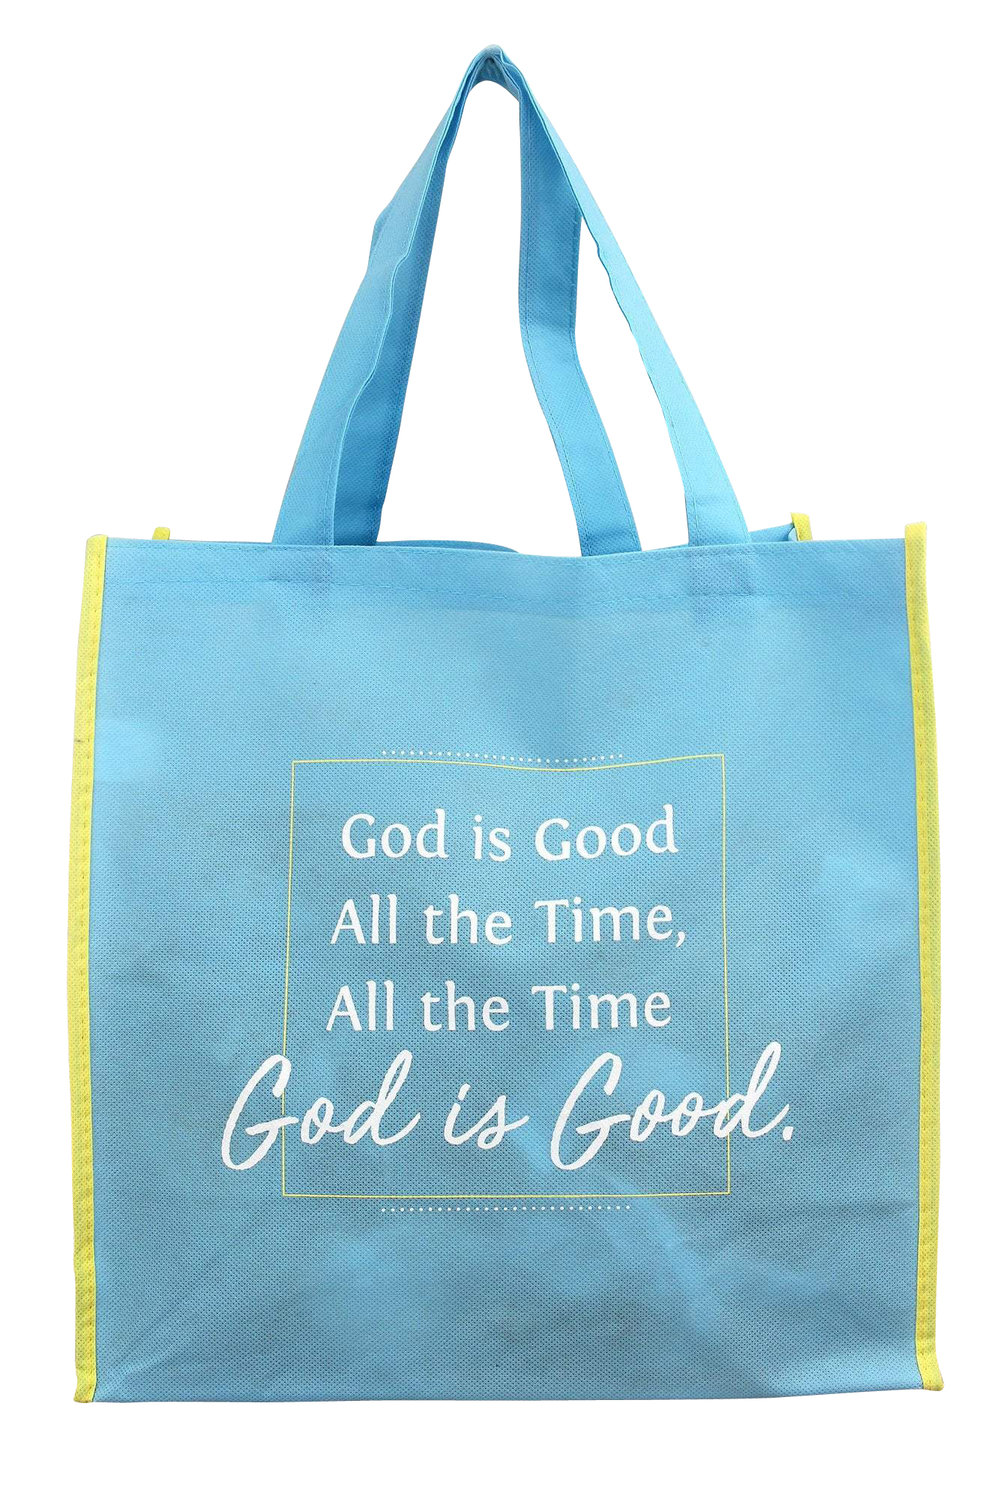 God Is Good Christian Scripture Saying Phrase Tote